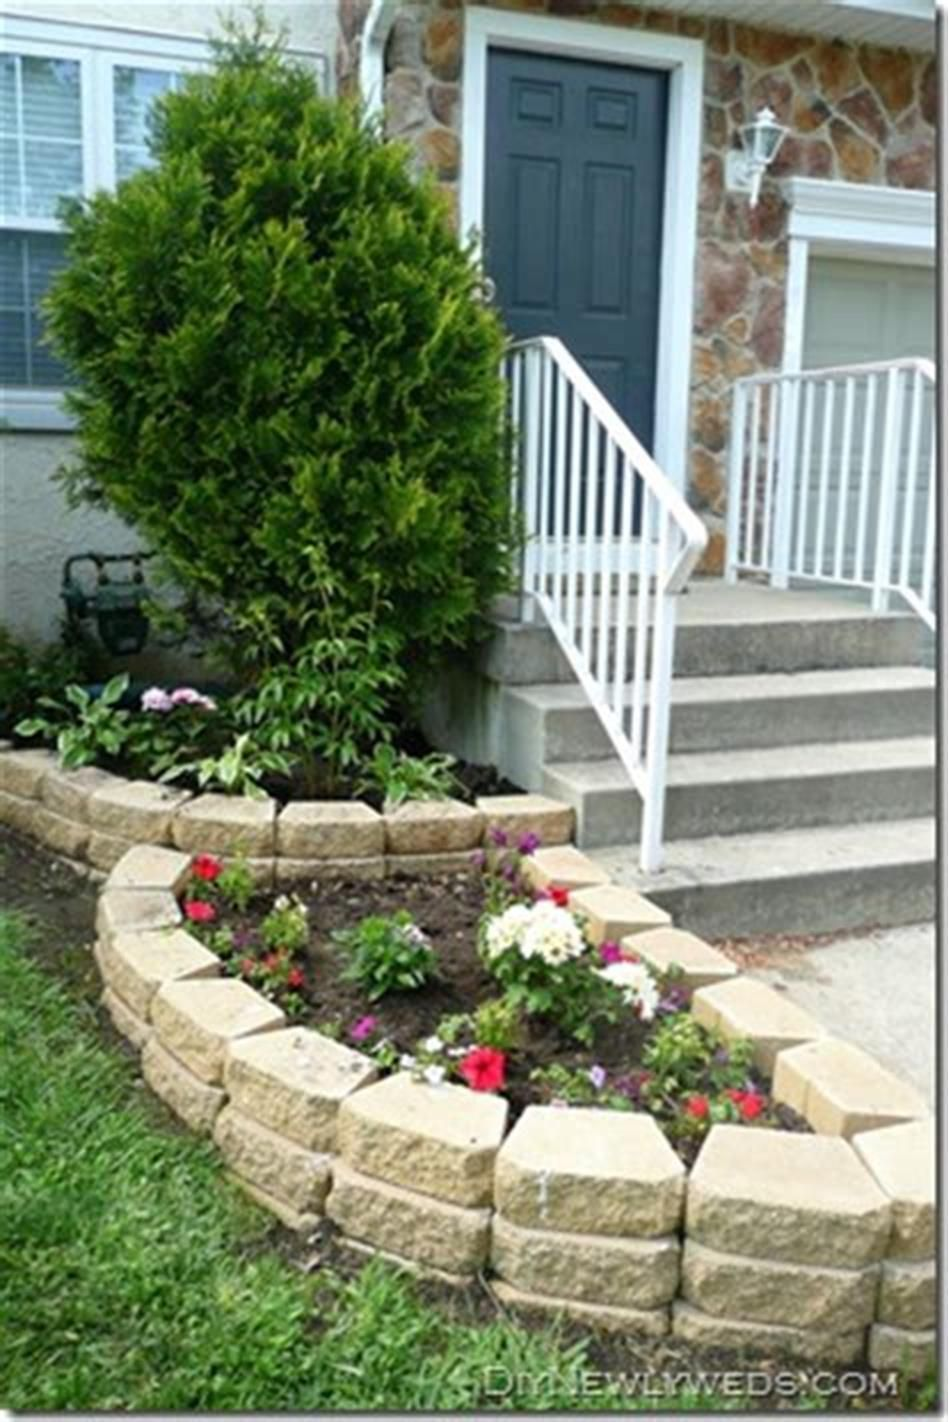 42 Best Front Yard Landscaping Ideas On A Budget Low Maintenance Backyard Landscaping Yard Landscaping Front Yard Landscaping